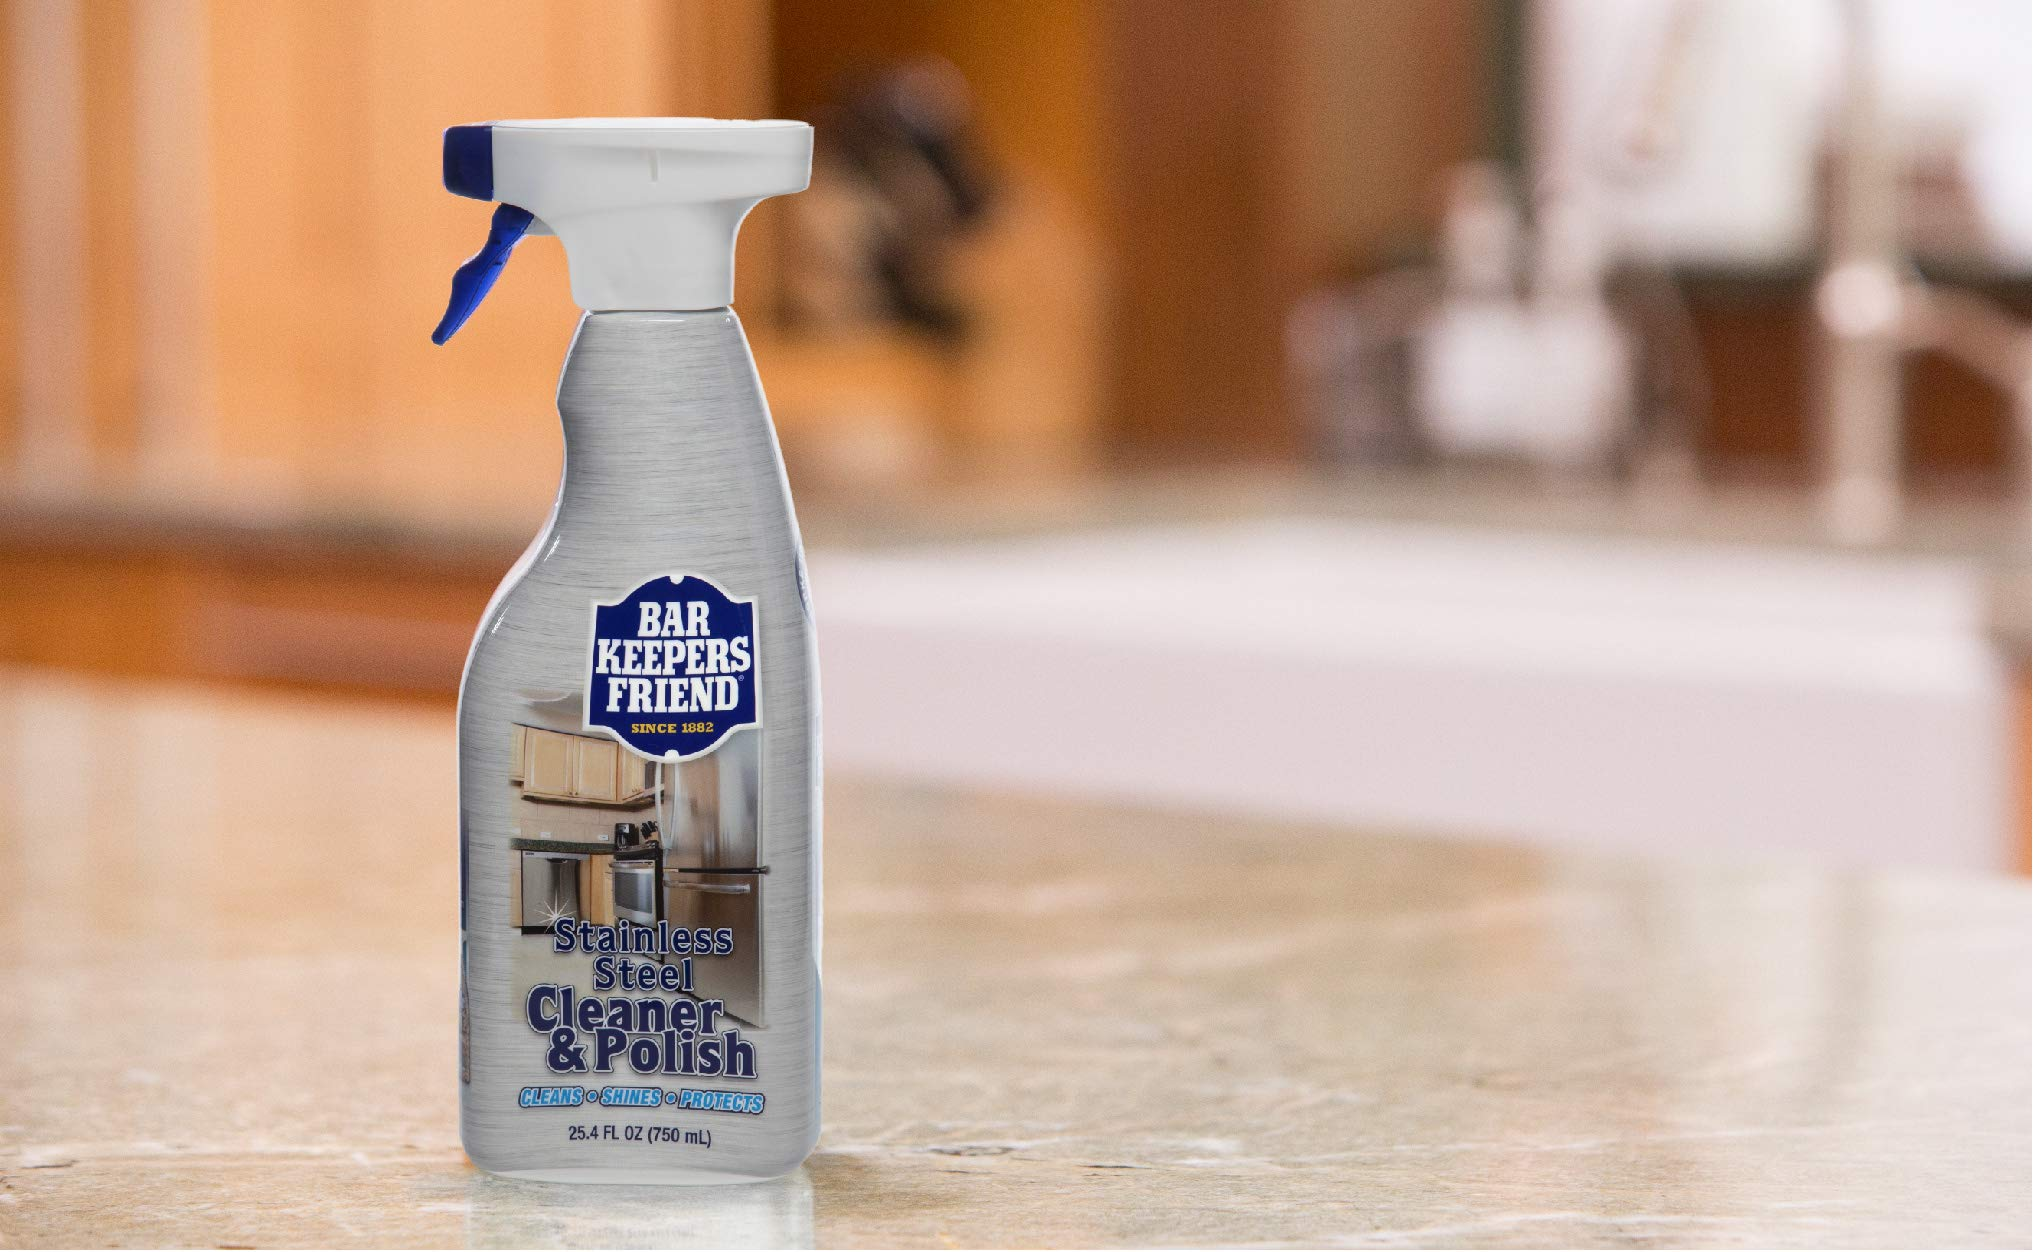 Bar Keepers Friend Stainless Steel Cleaner & Polish (25.4 oz) - Cleans Stainless Steel Refrigerators, Kitchen Sinks, Oven Doors, Oven Hoods, and Other Stainless Steel Surfaces (4) by  Bar Keepers Friend (Image #6)